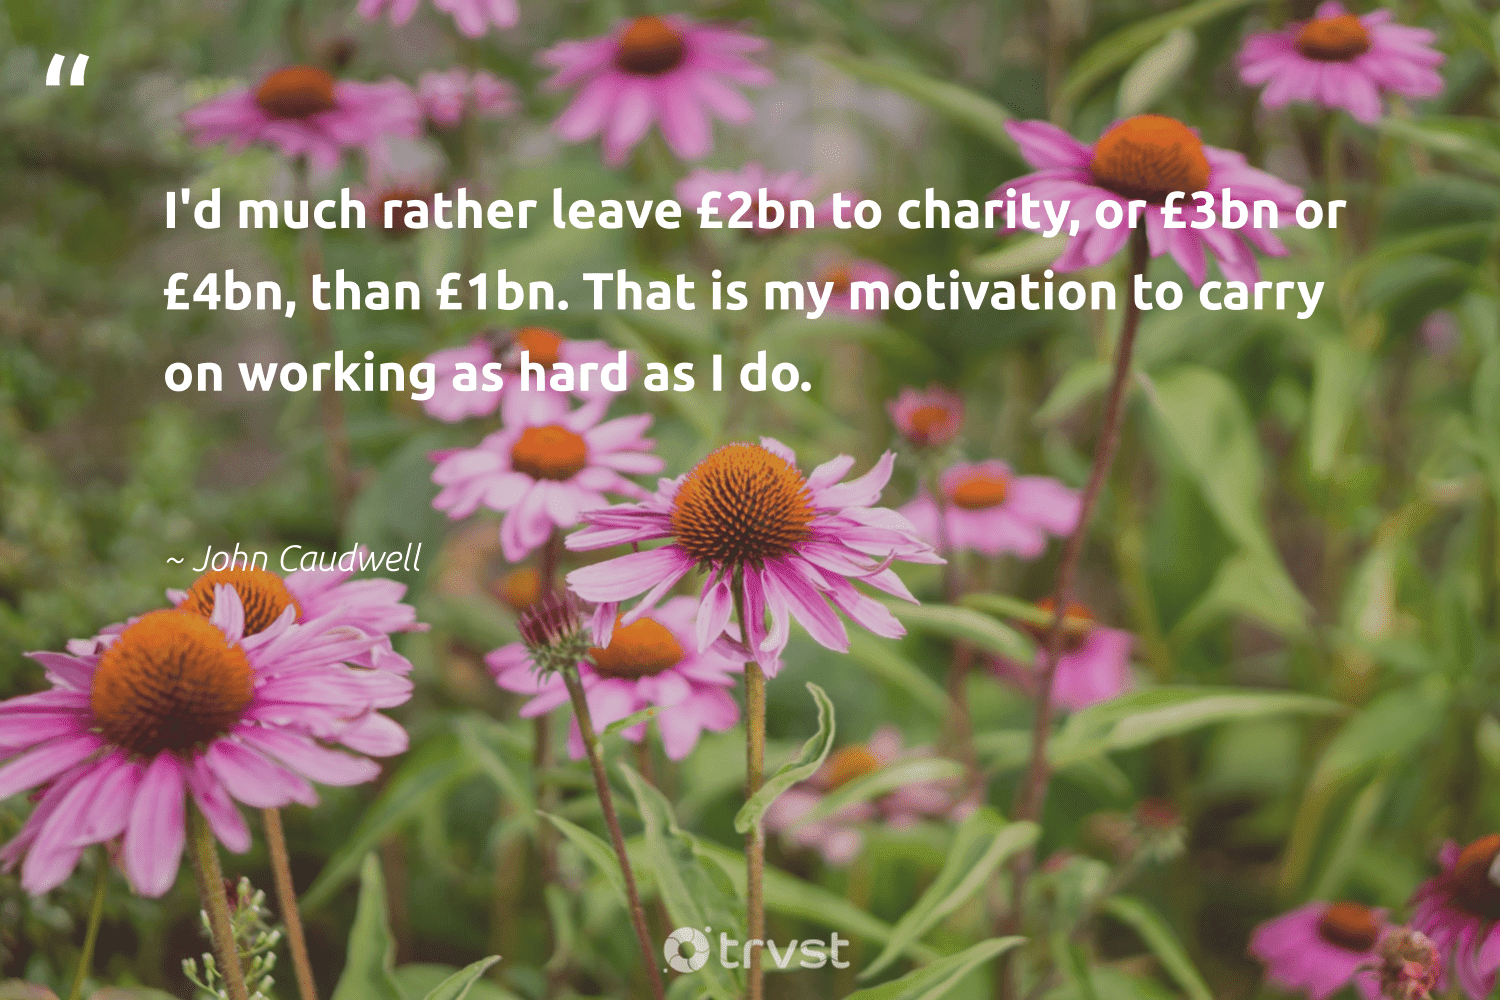 """""""I'd much rather leave £2bn to charity, or £3bn or £4bn, than £1bn. That is my motivation to carry on working as hard as I do.""""  - John Caudwell #trvst #quotes #motivation #entrepreneurmindset #believeinyourself #togetherwecan #planetearthfirst #mindful #positivity #begreat #changetheworld #creativemindset"""